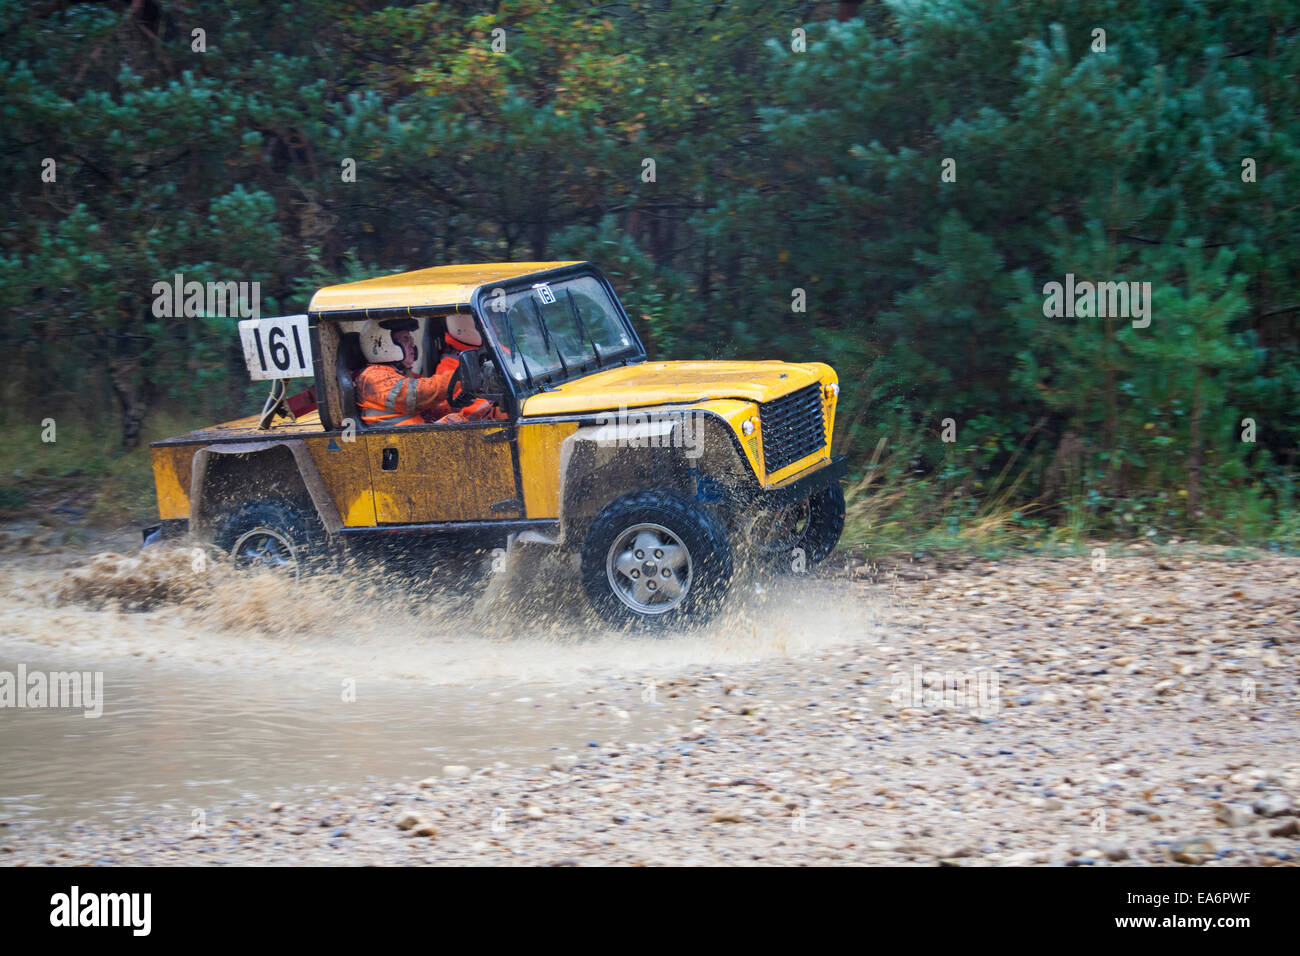 Competitive Safari Off Road racing event at Bagshot, Surrey in October - Stock Image